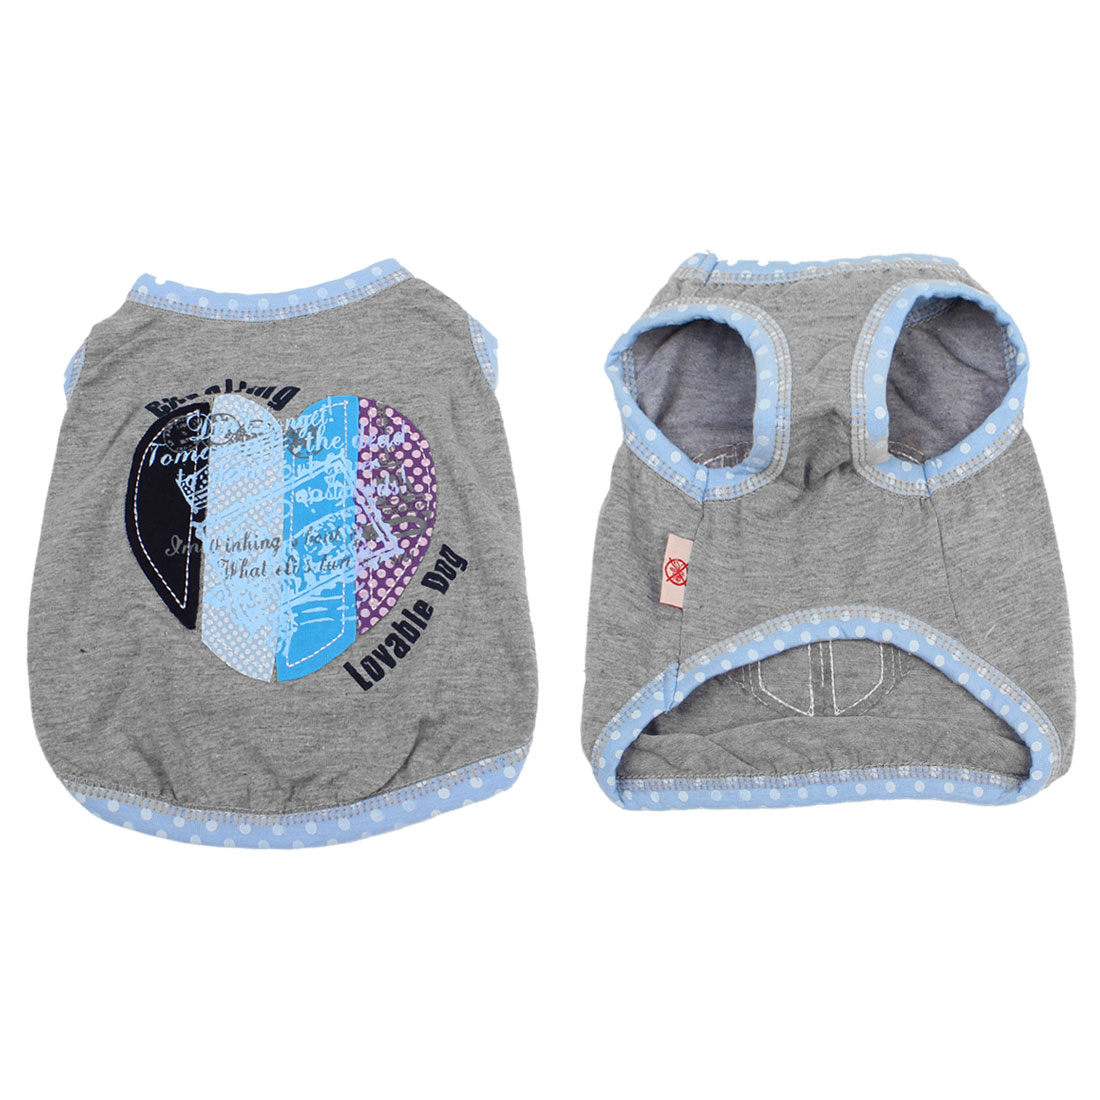 Heart Decor Polka Dot Neck Dog Tank Top Puppy Pet Clothes Gray XS